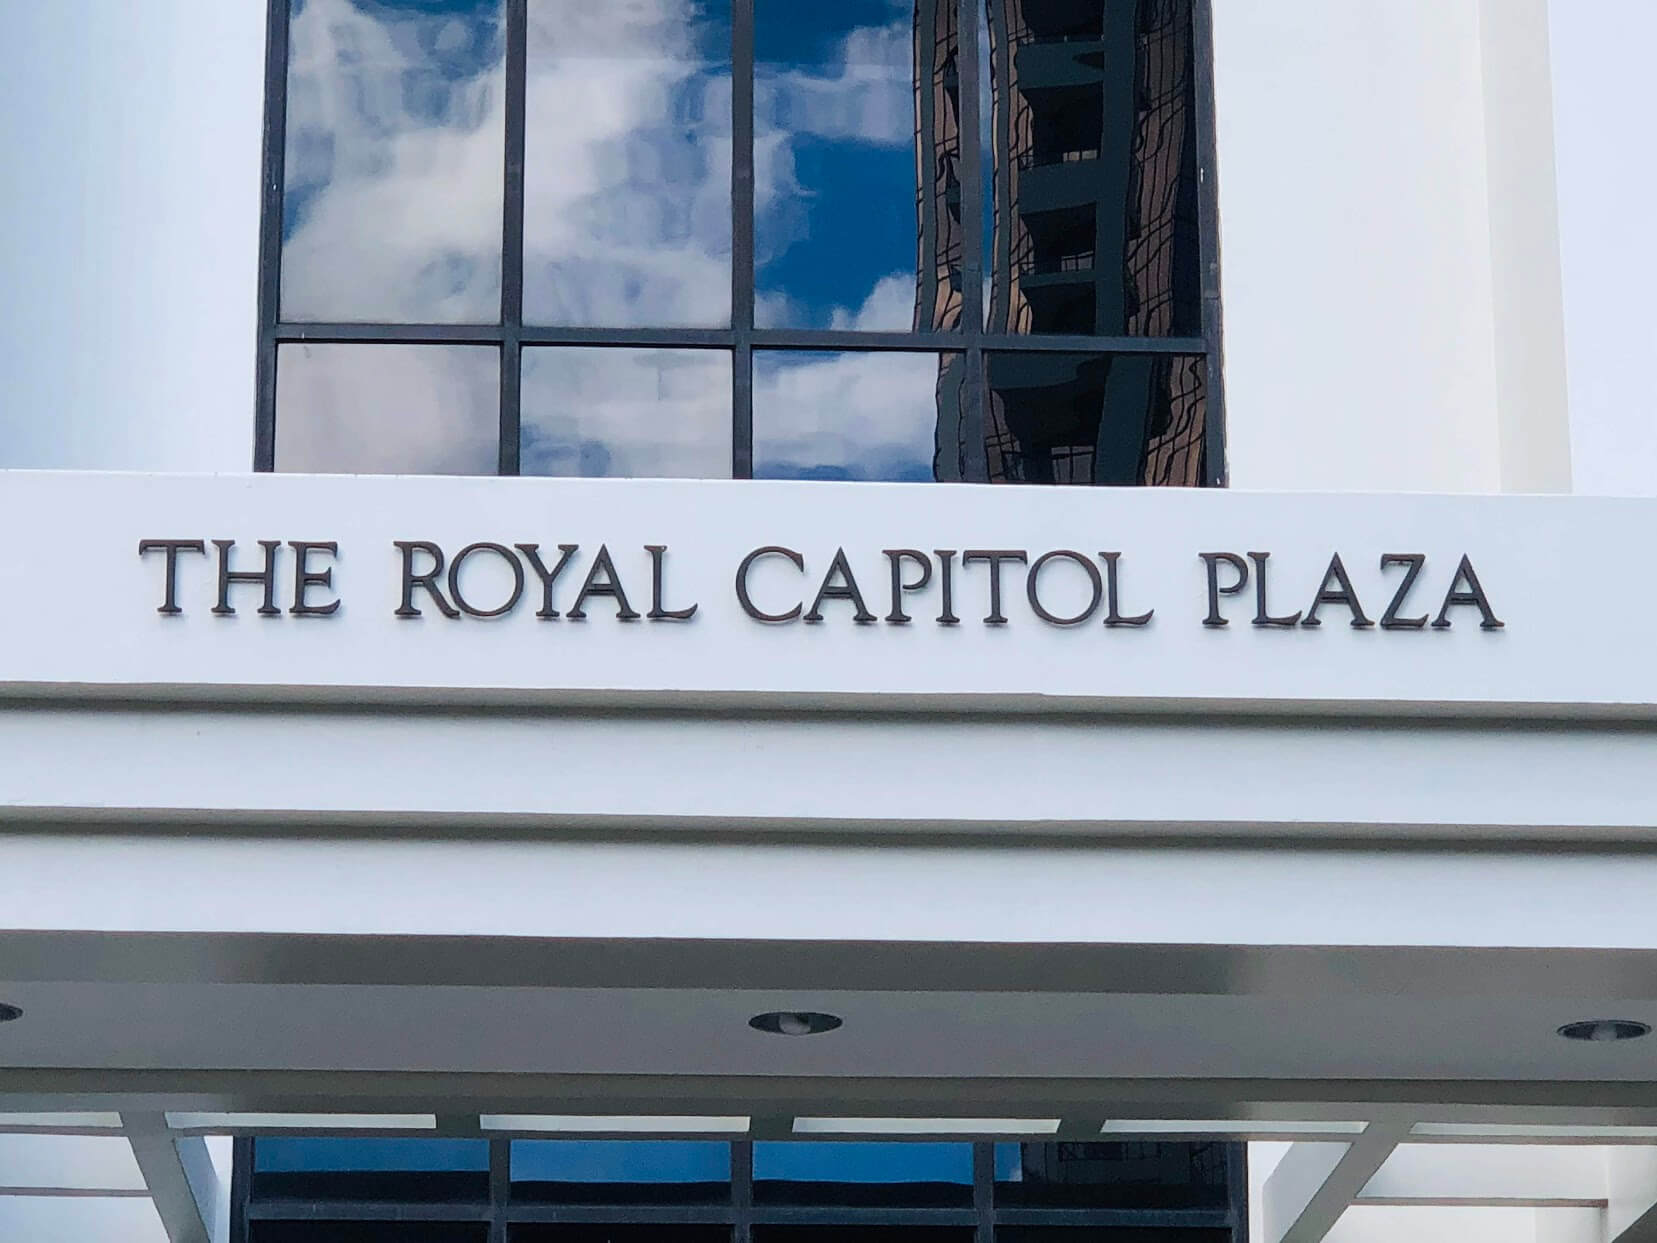 The Royal Capitol Plazaの看板